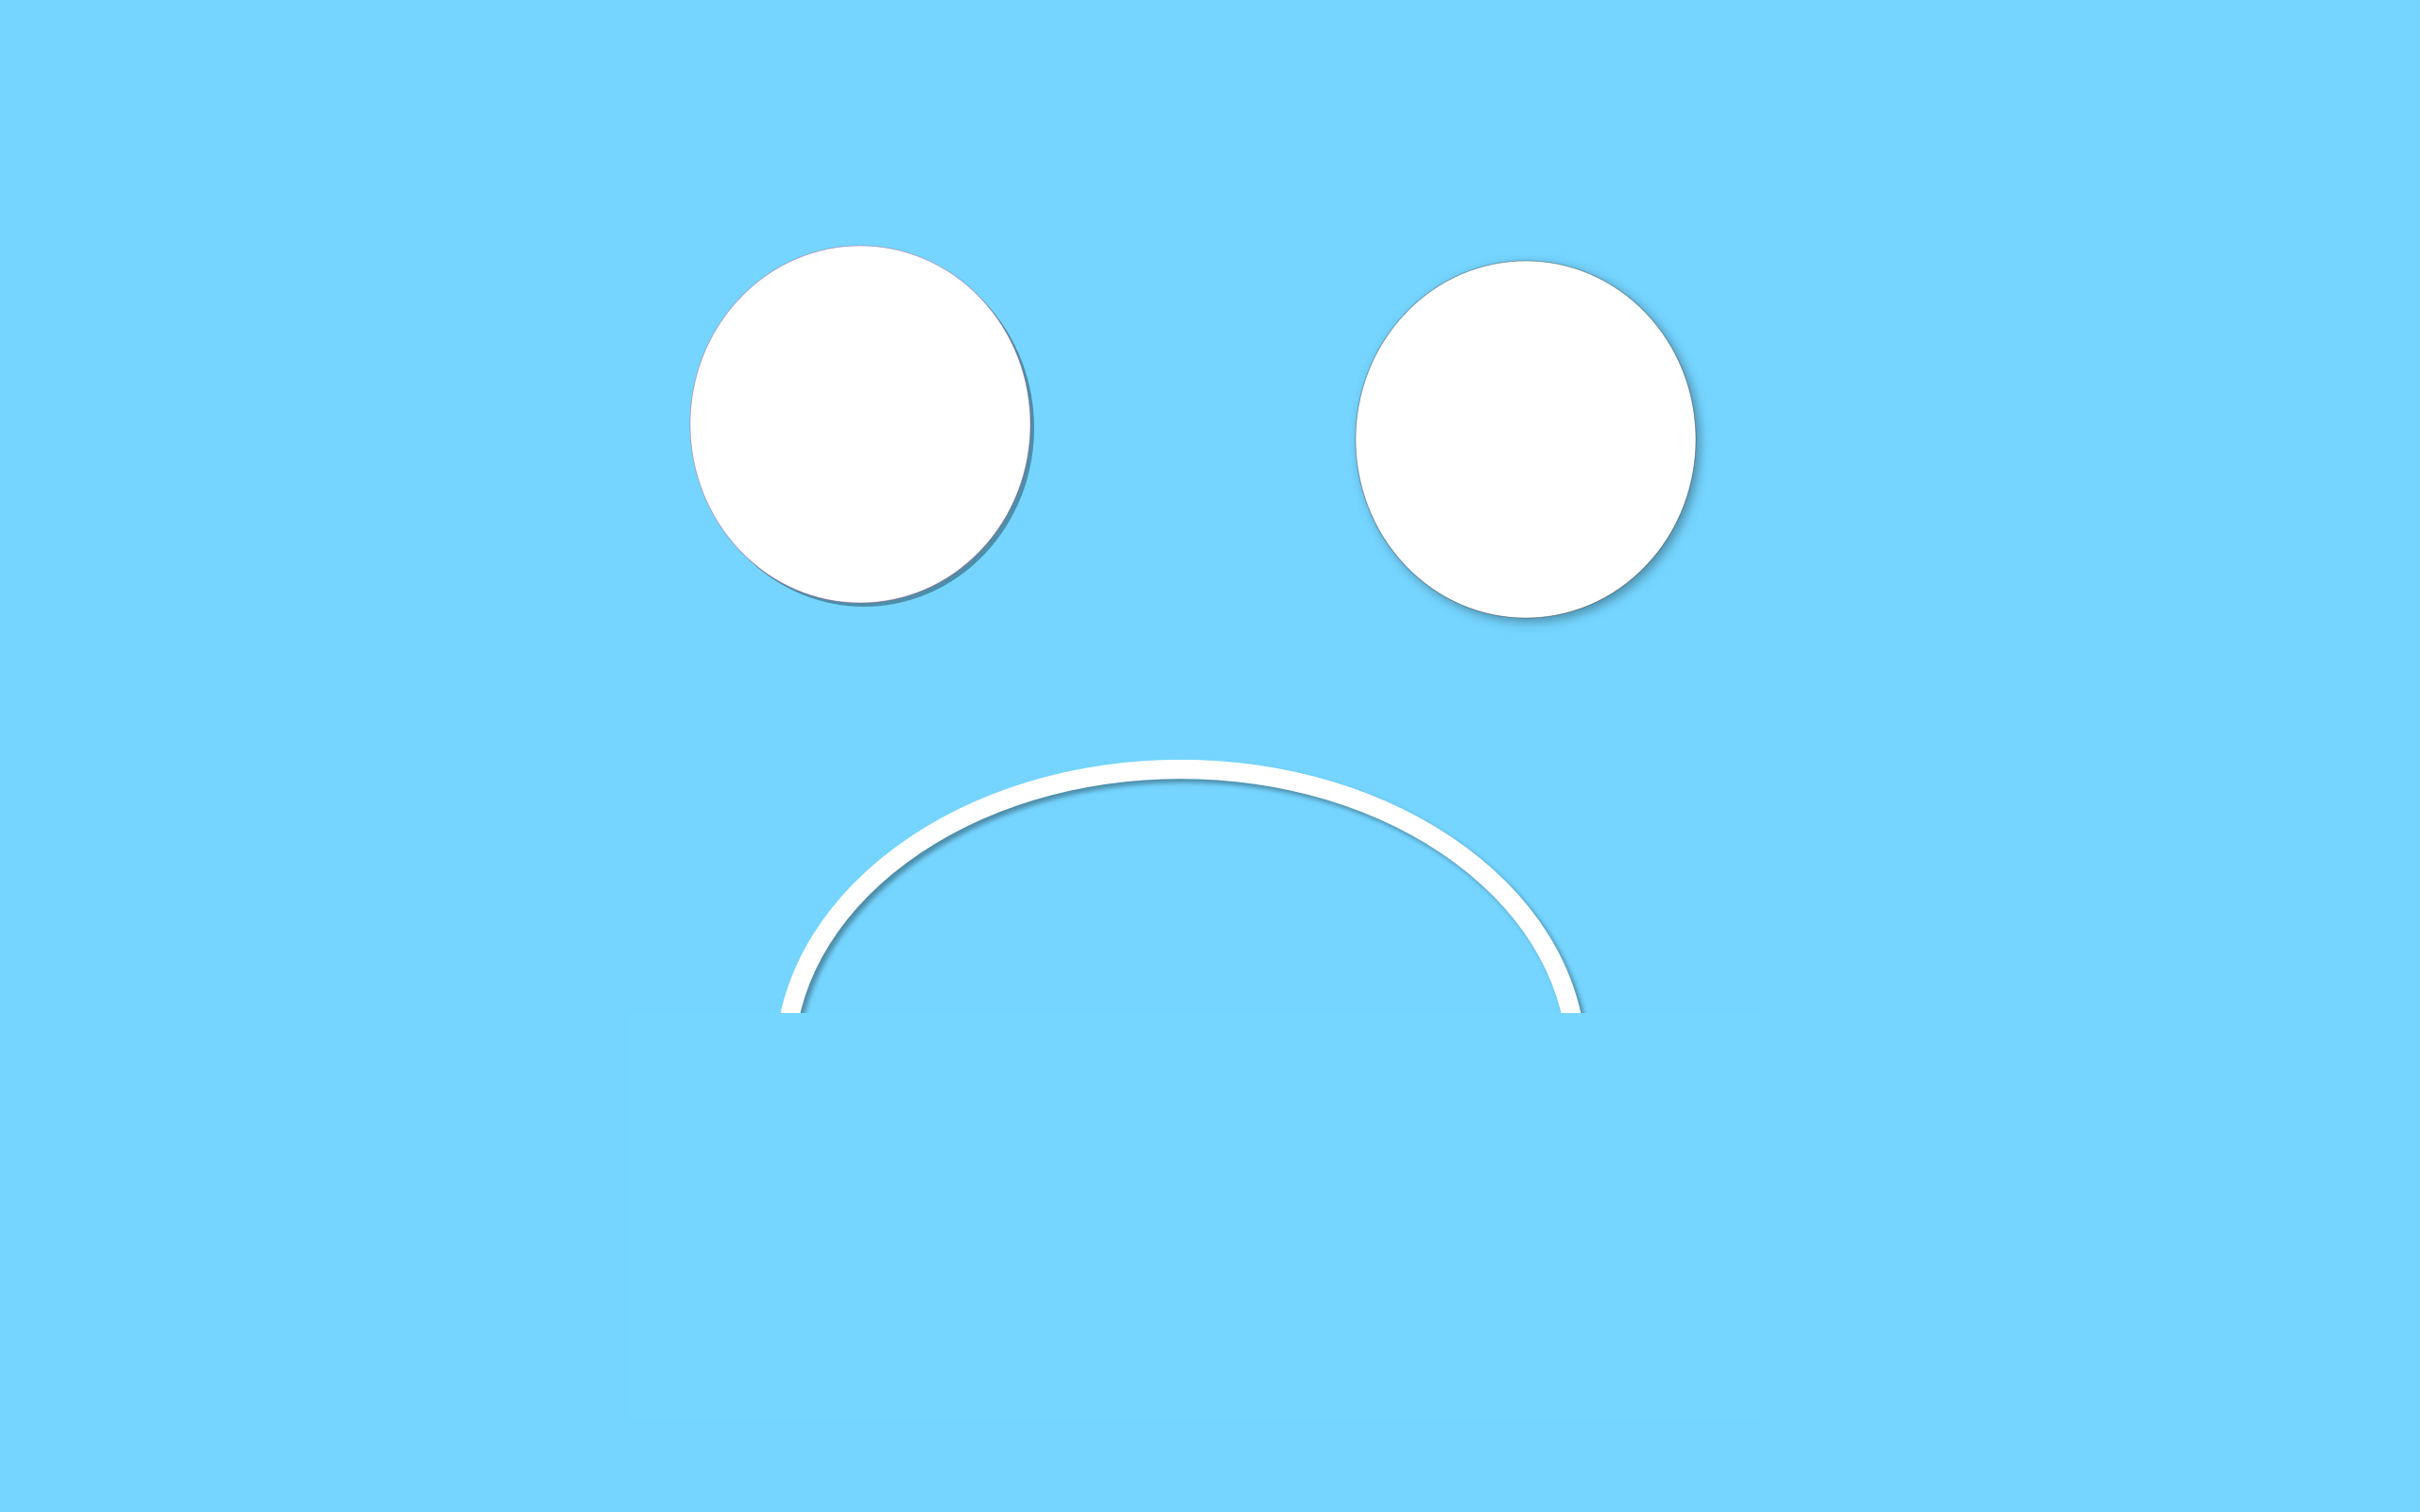 Sad Face Wallpaper   ClipArt Best 2560x1600